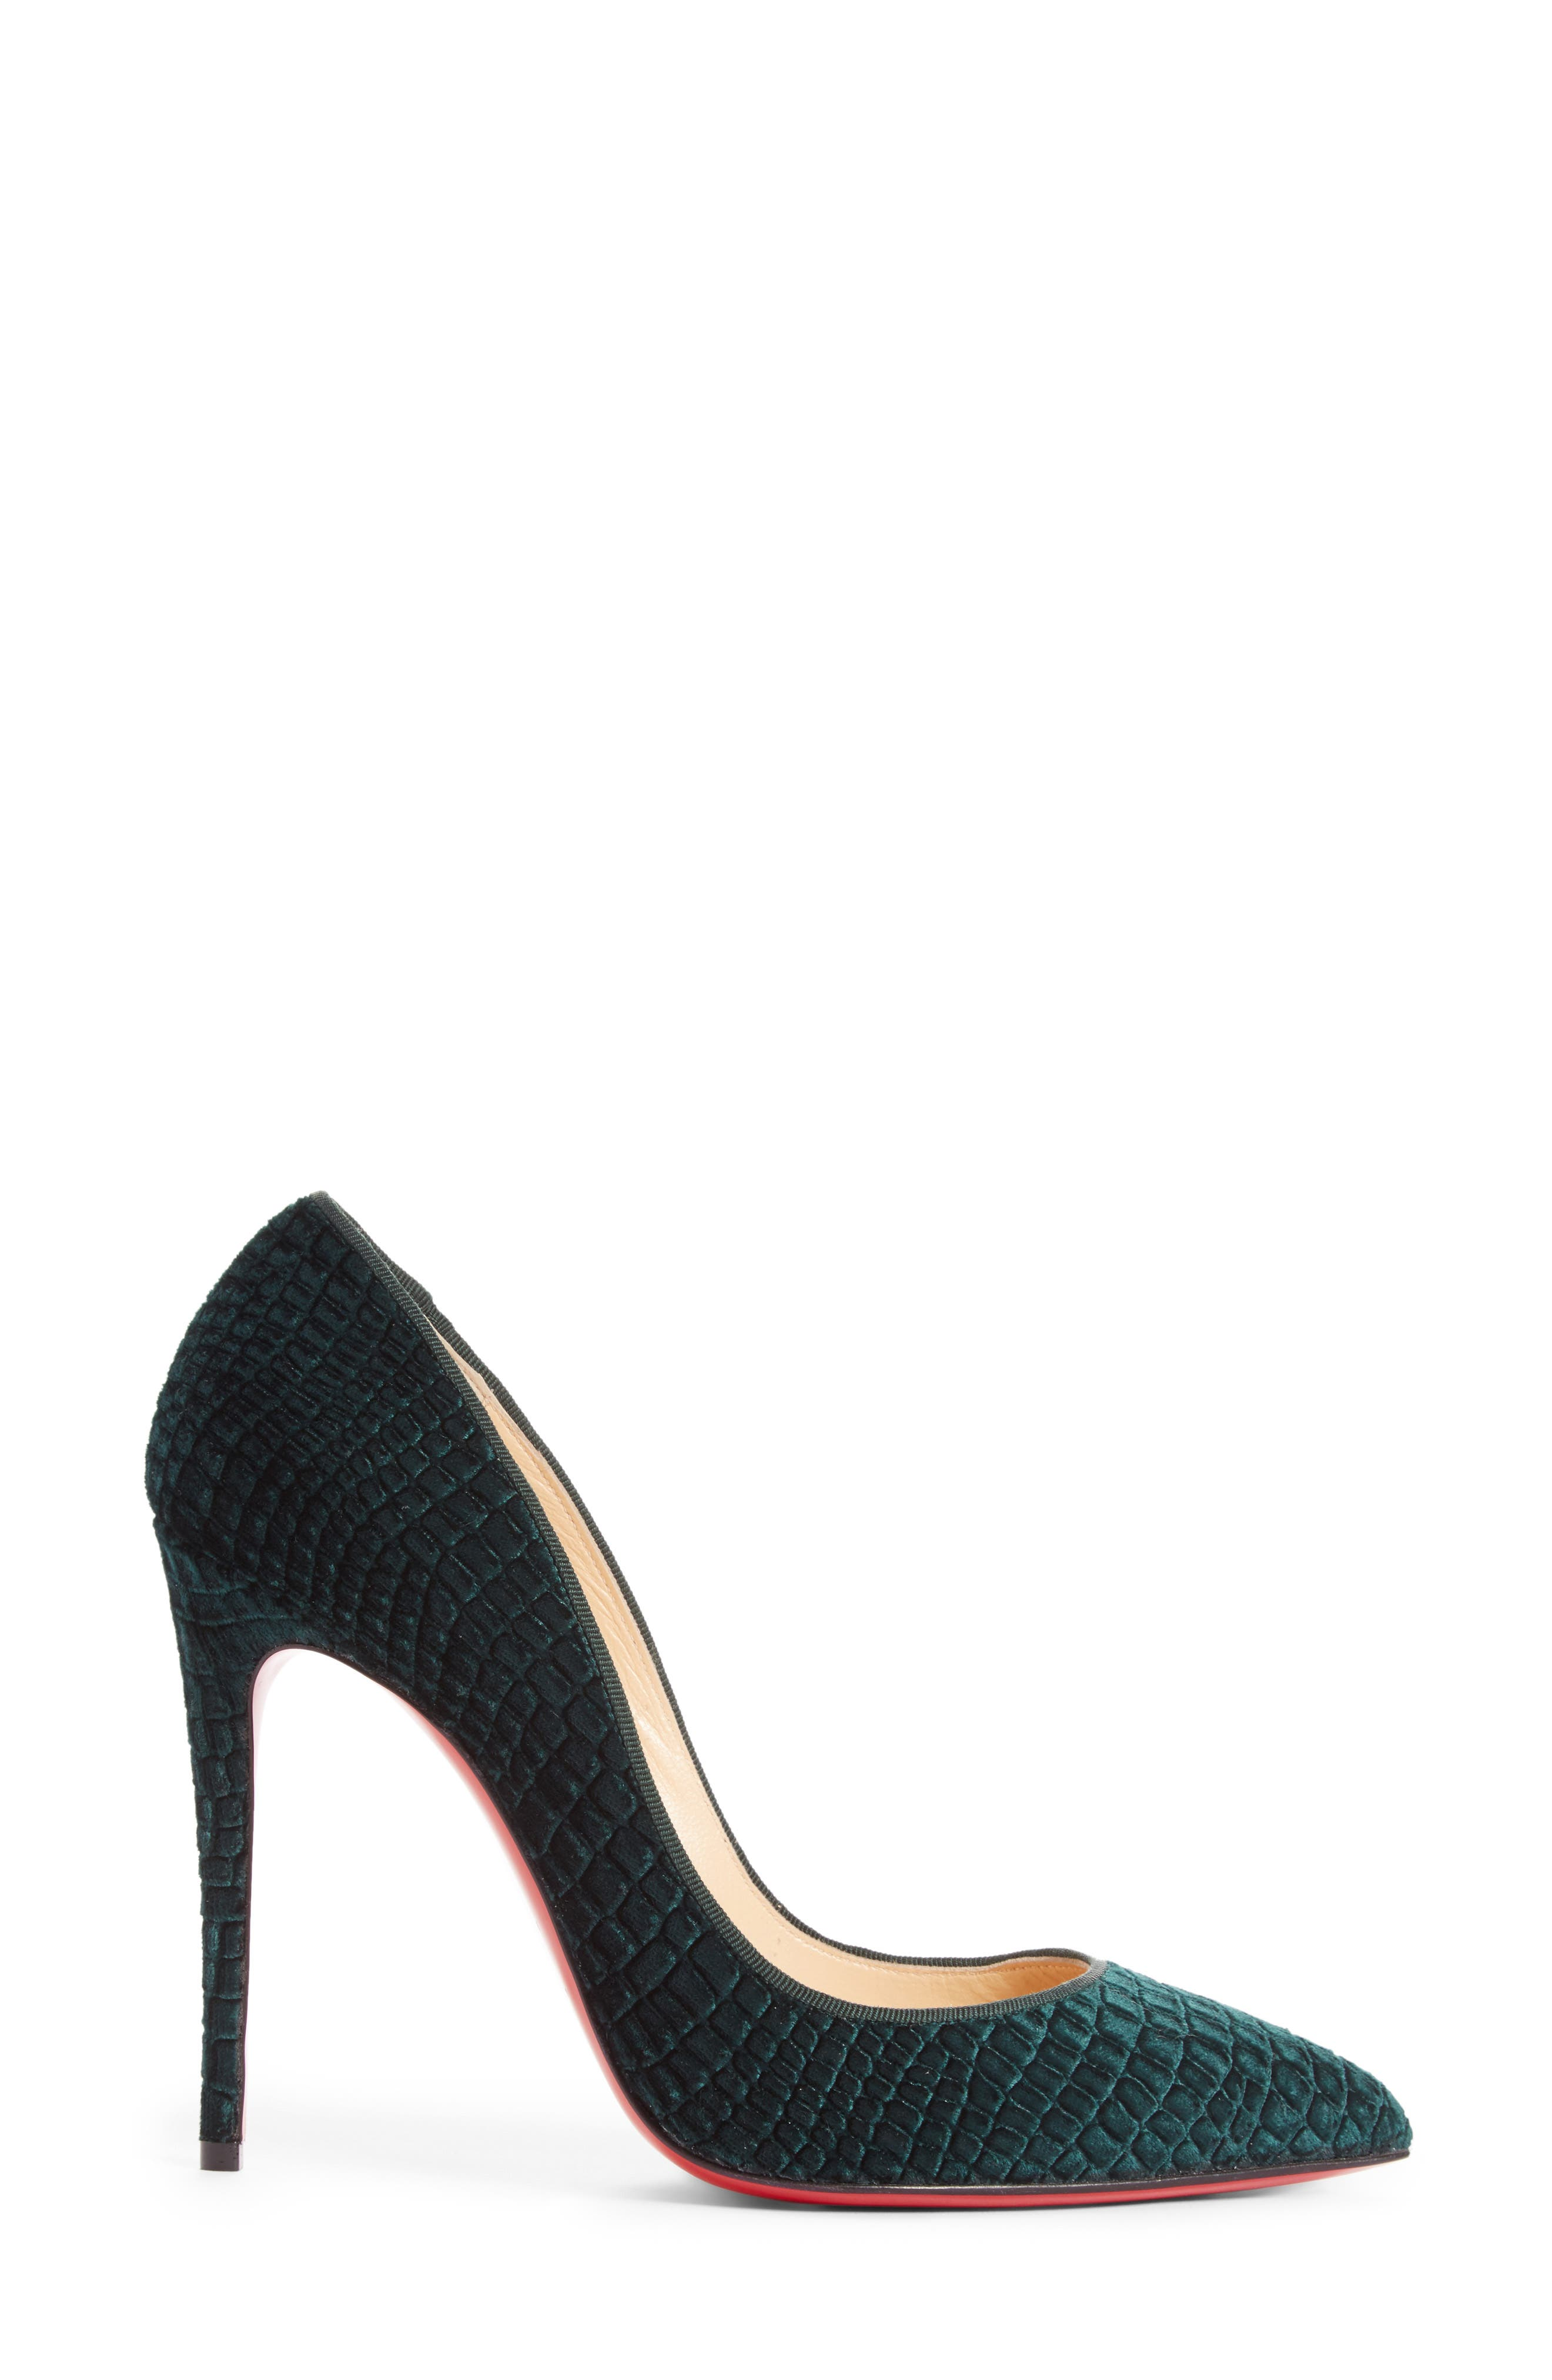 Pigalle Follies Pointy Toe Pump,                             Alternate thumbnail 3, color,                             300